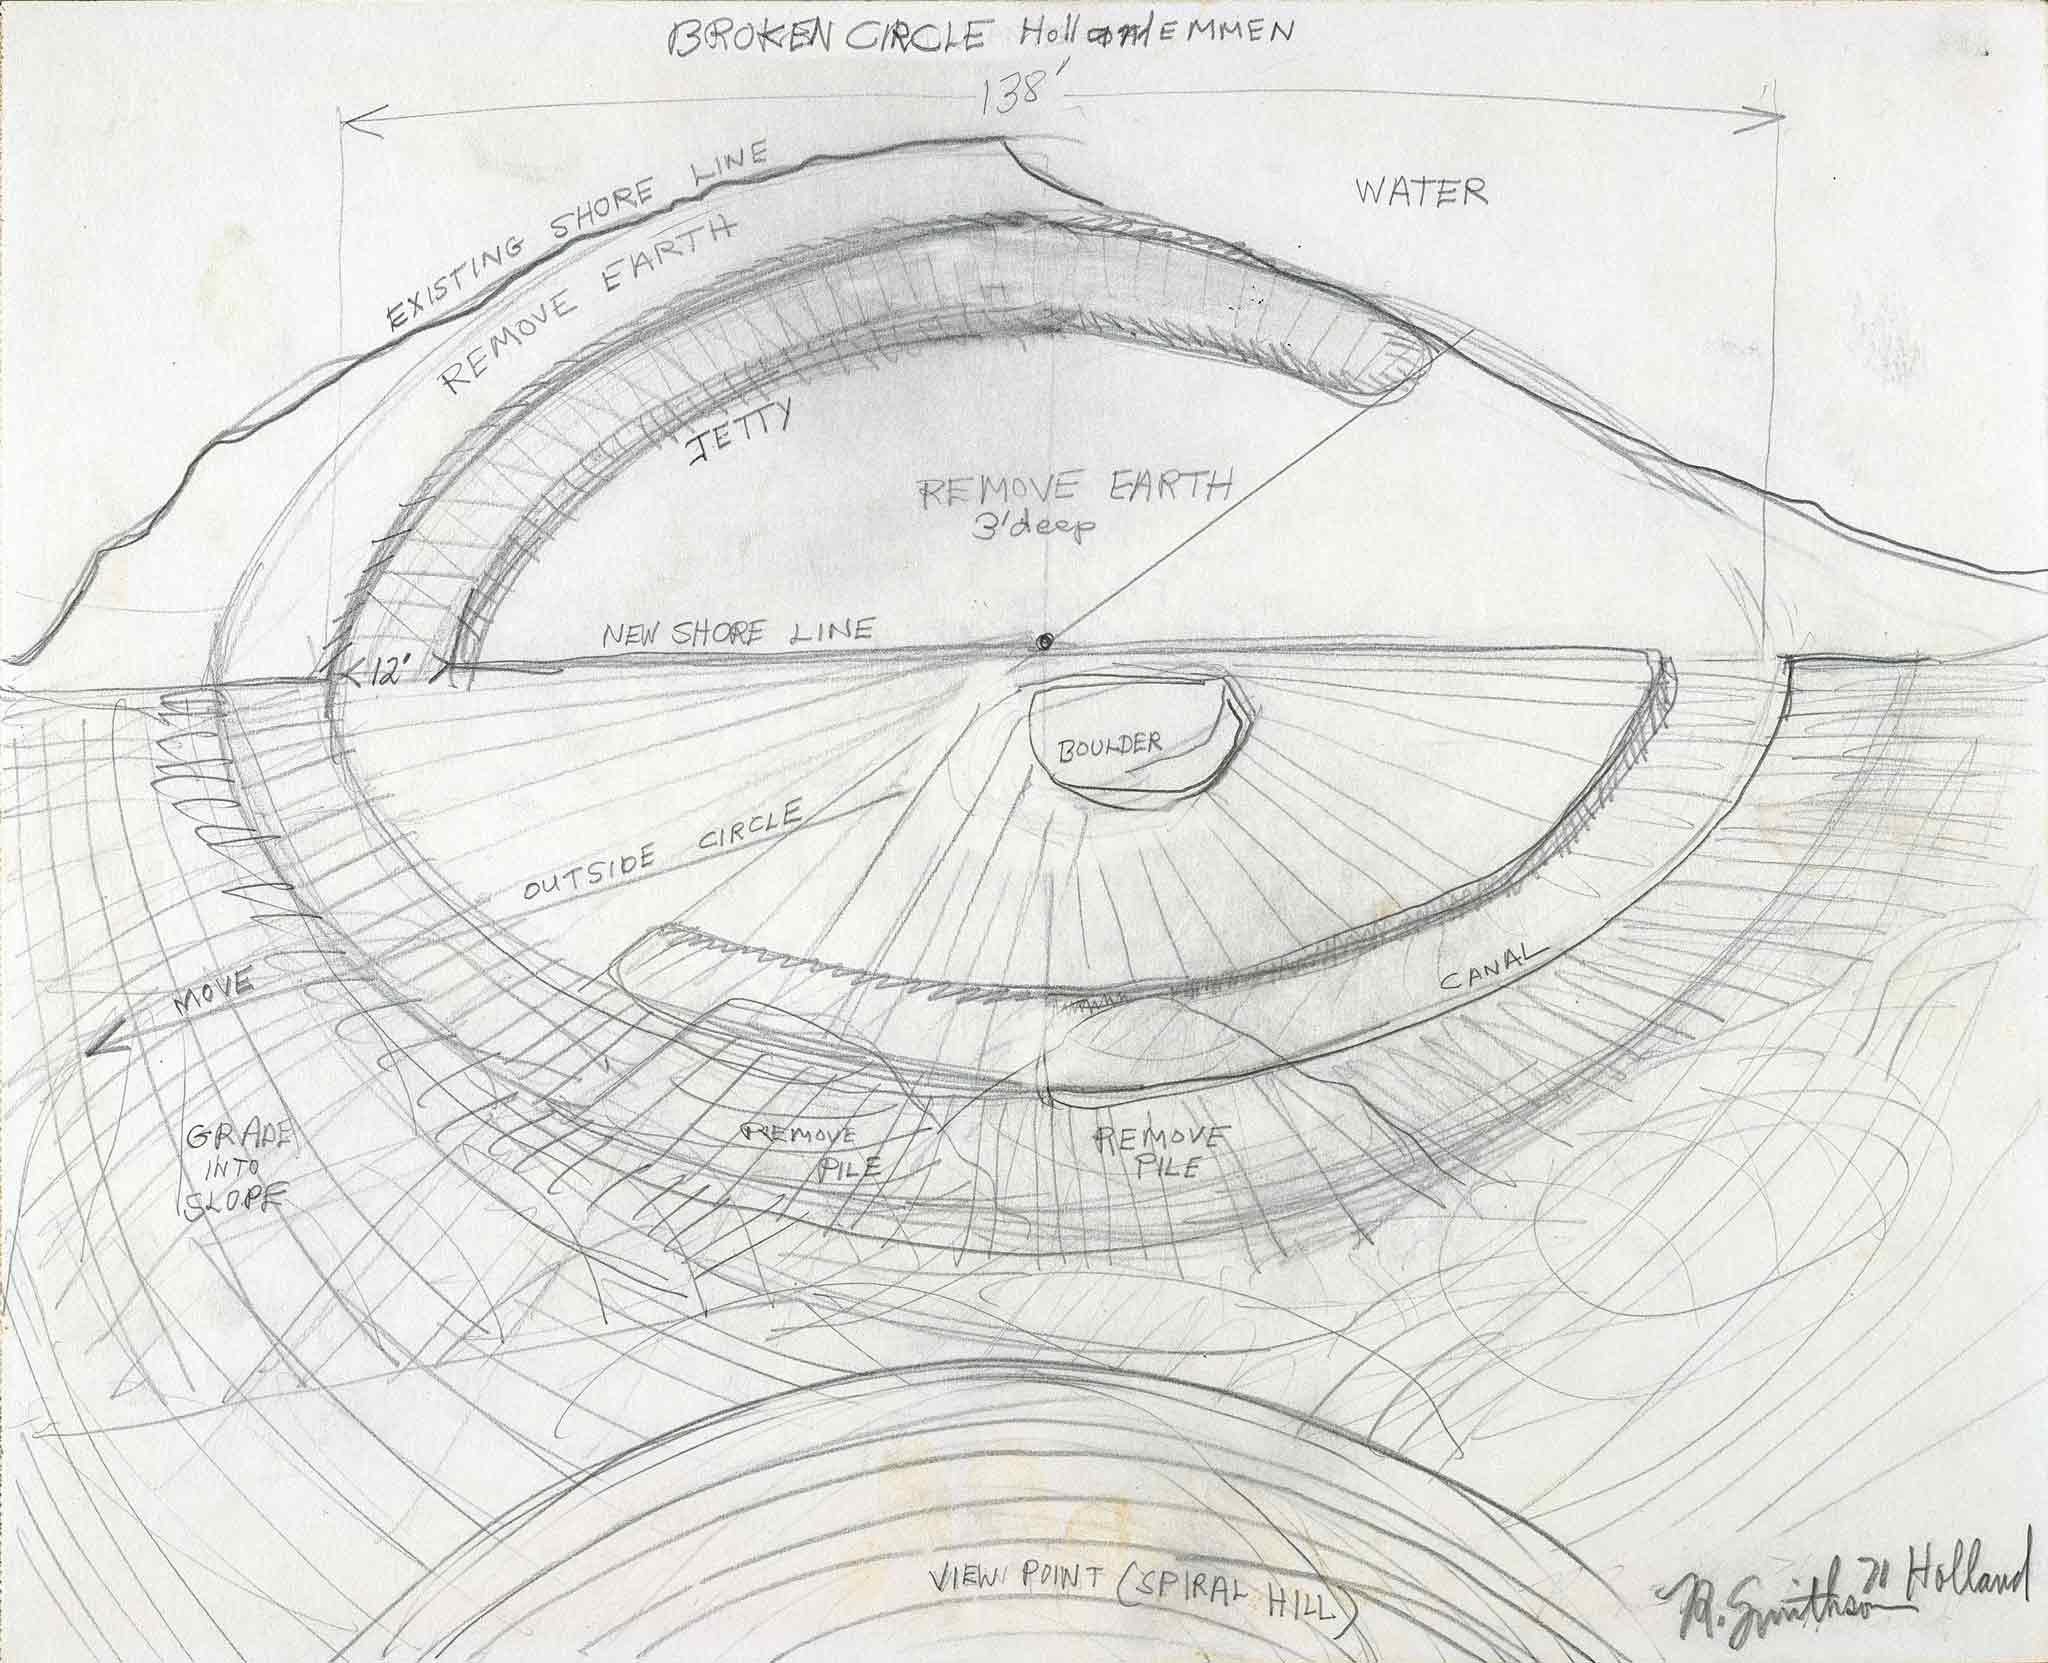 A drawing by Robert Smithson of his earthwork, Broken Circle in Emmen, the Netherlands